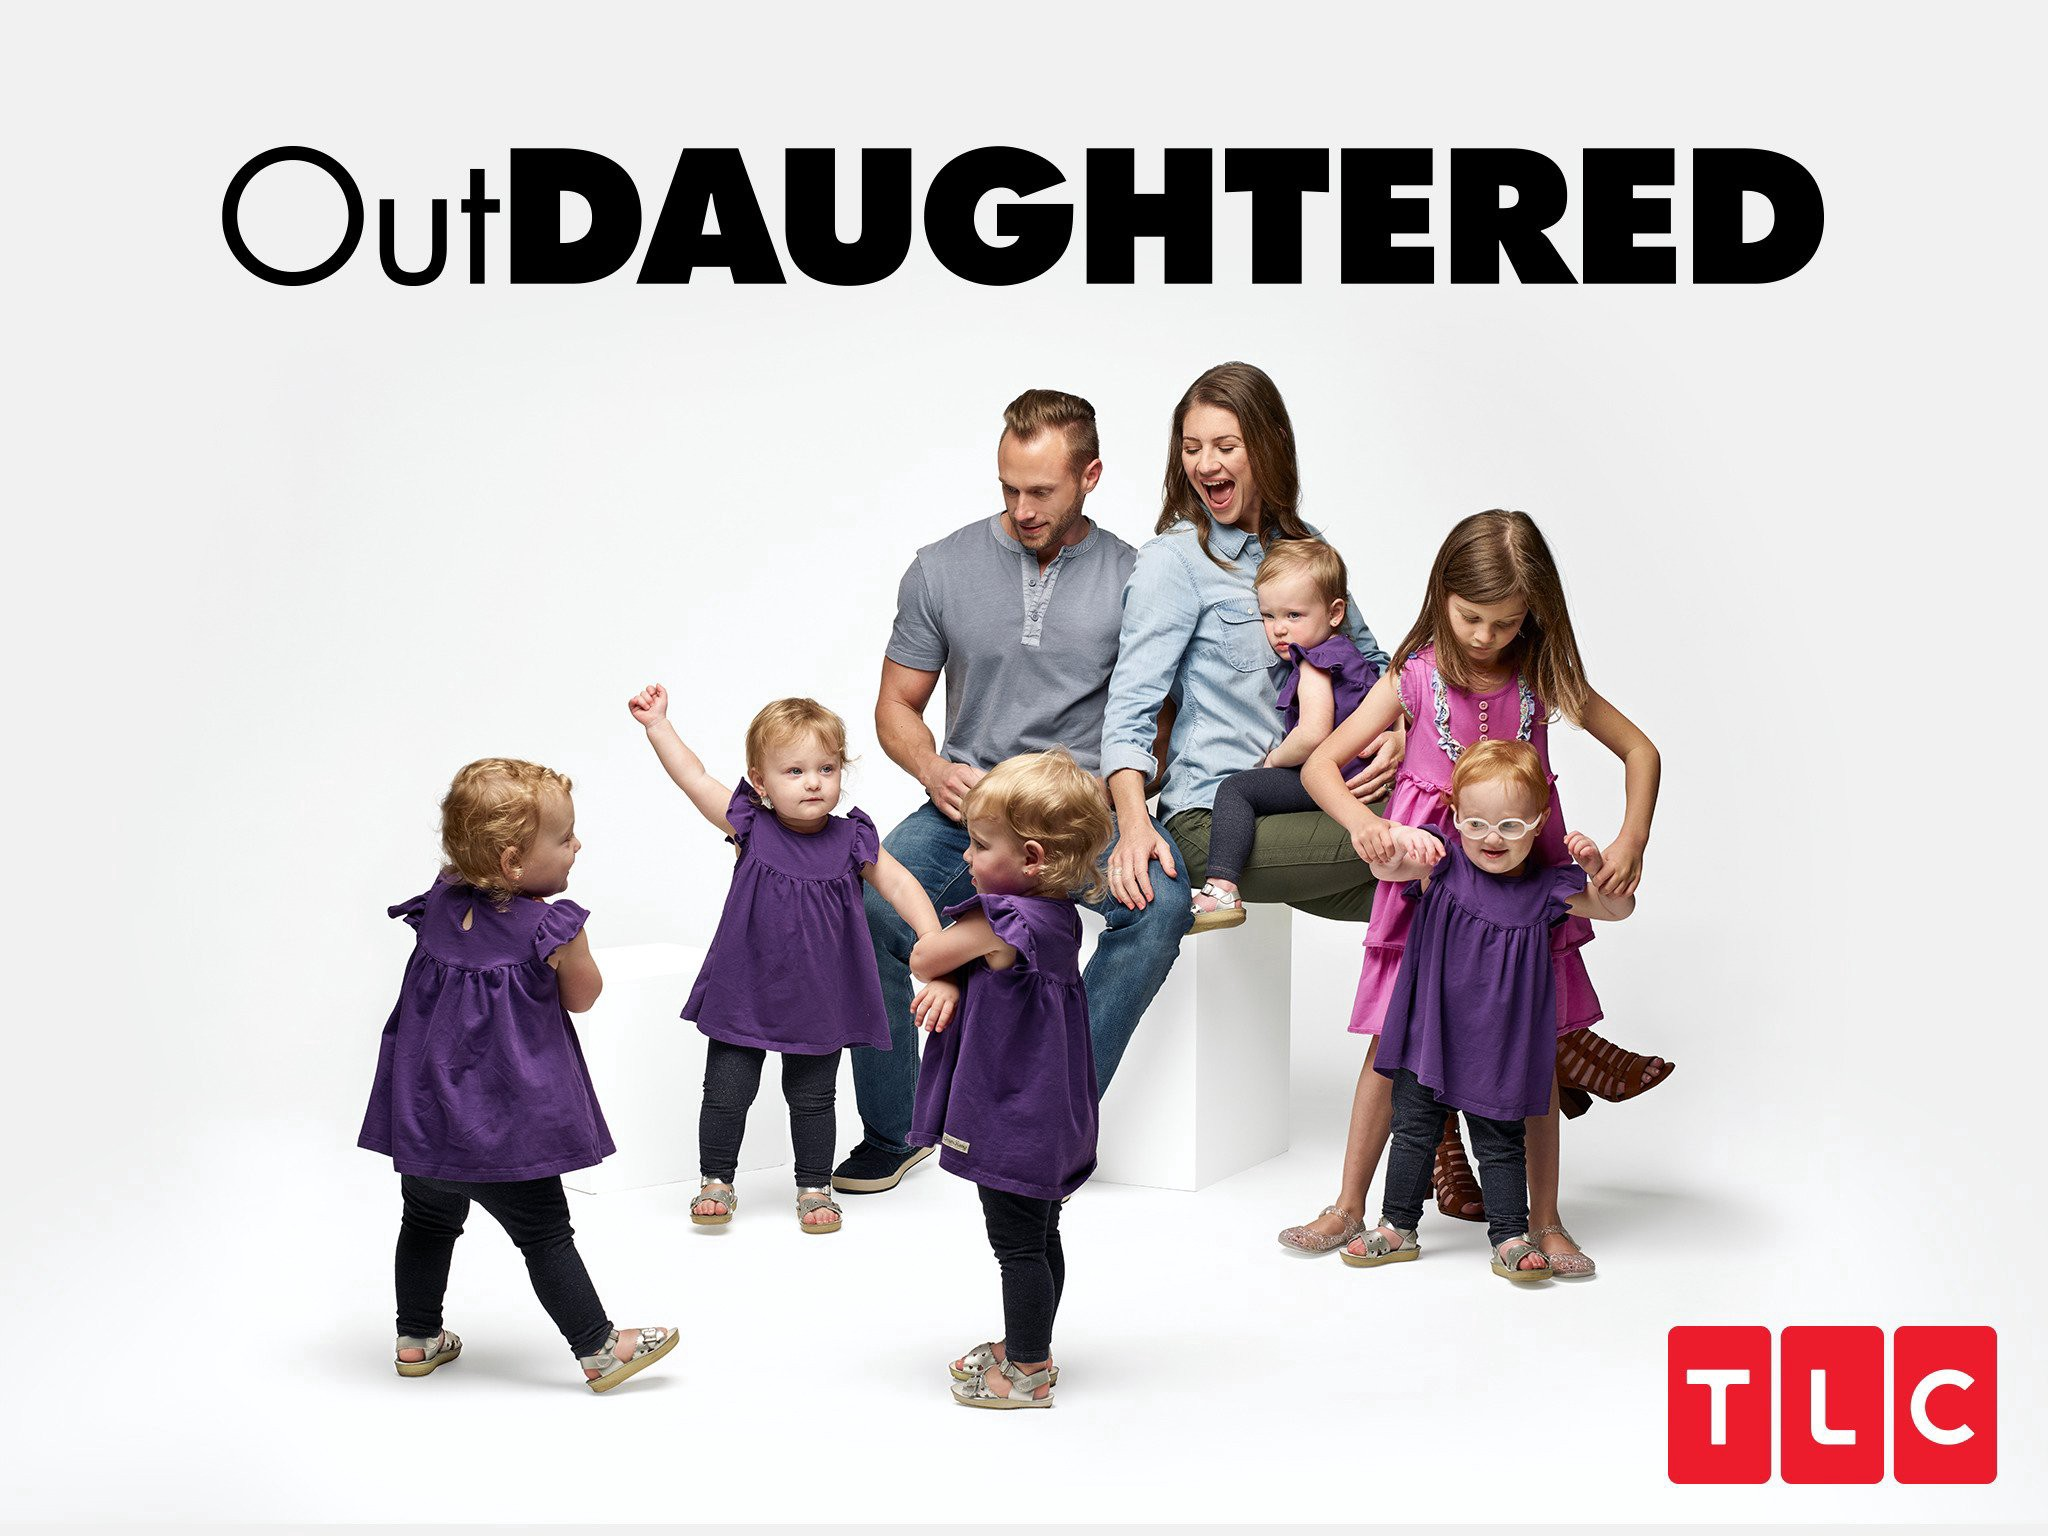 Outdaughtered Season 7 Episode 1 To Be Released On June 2